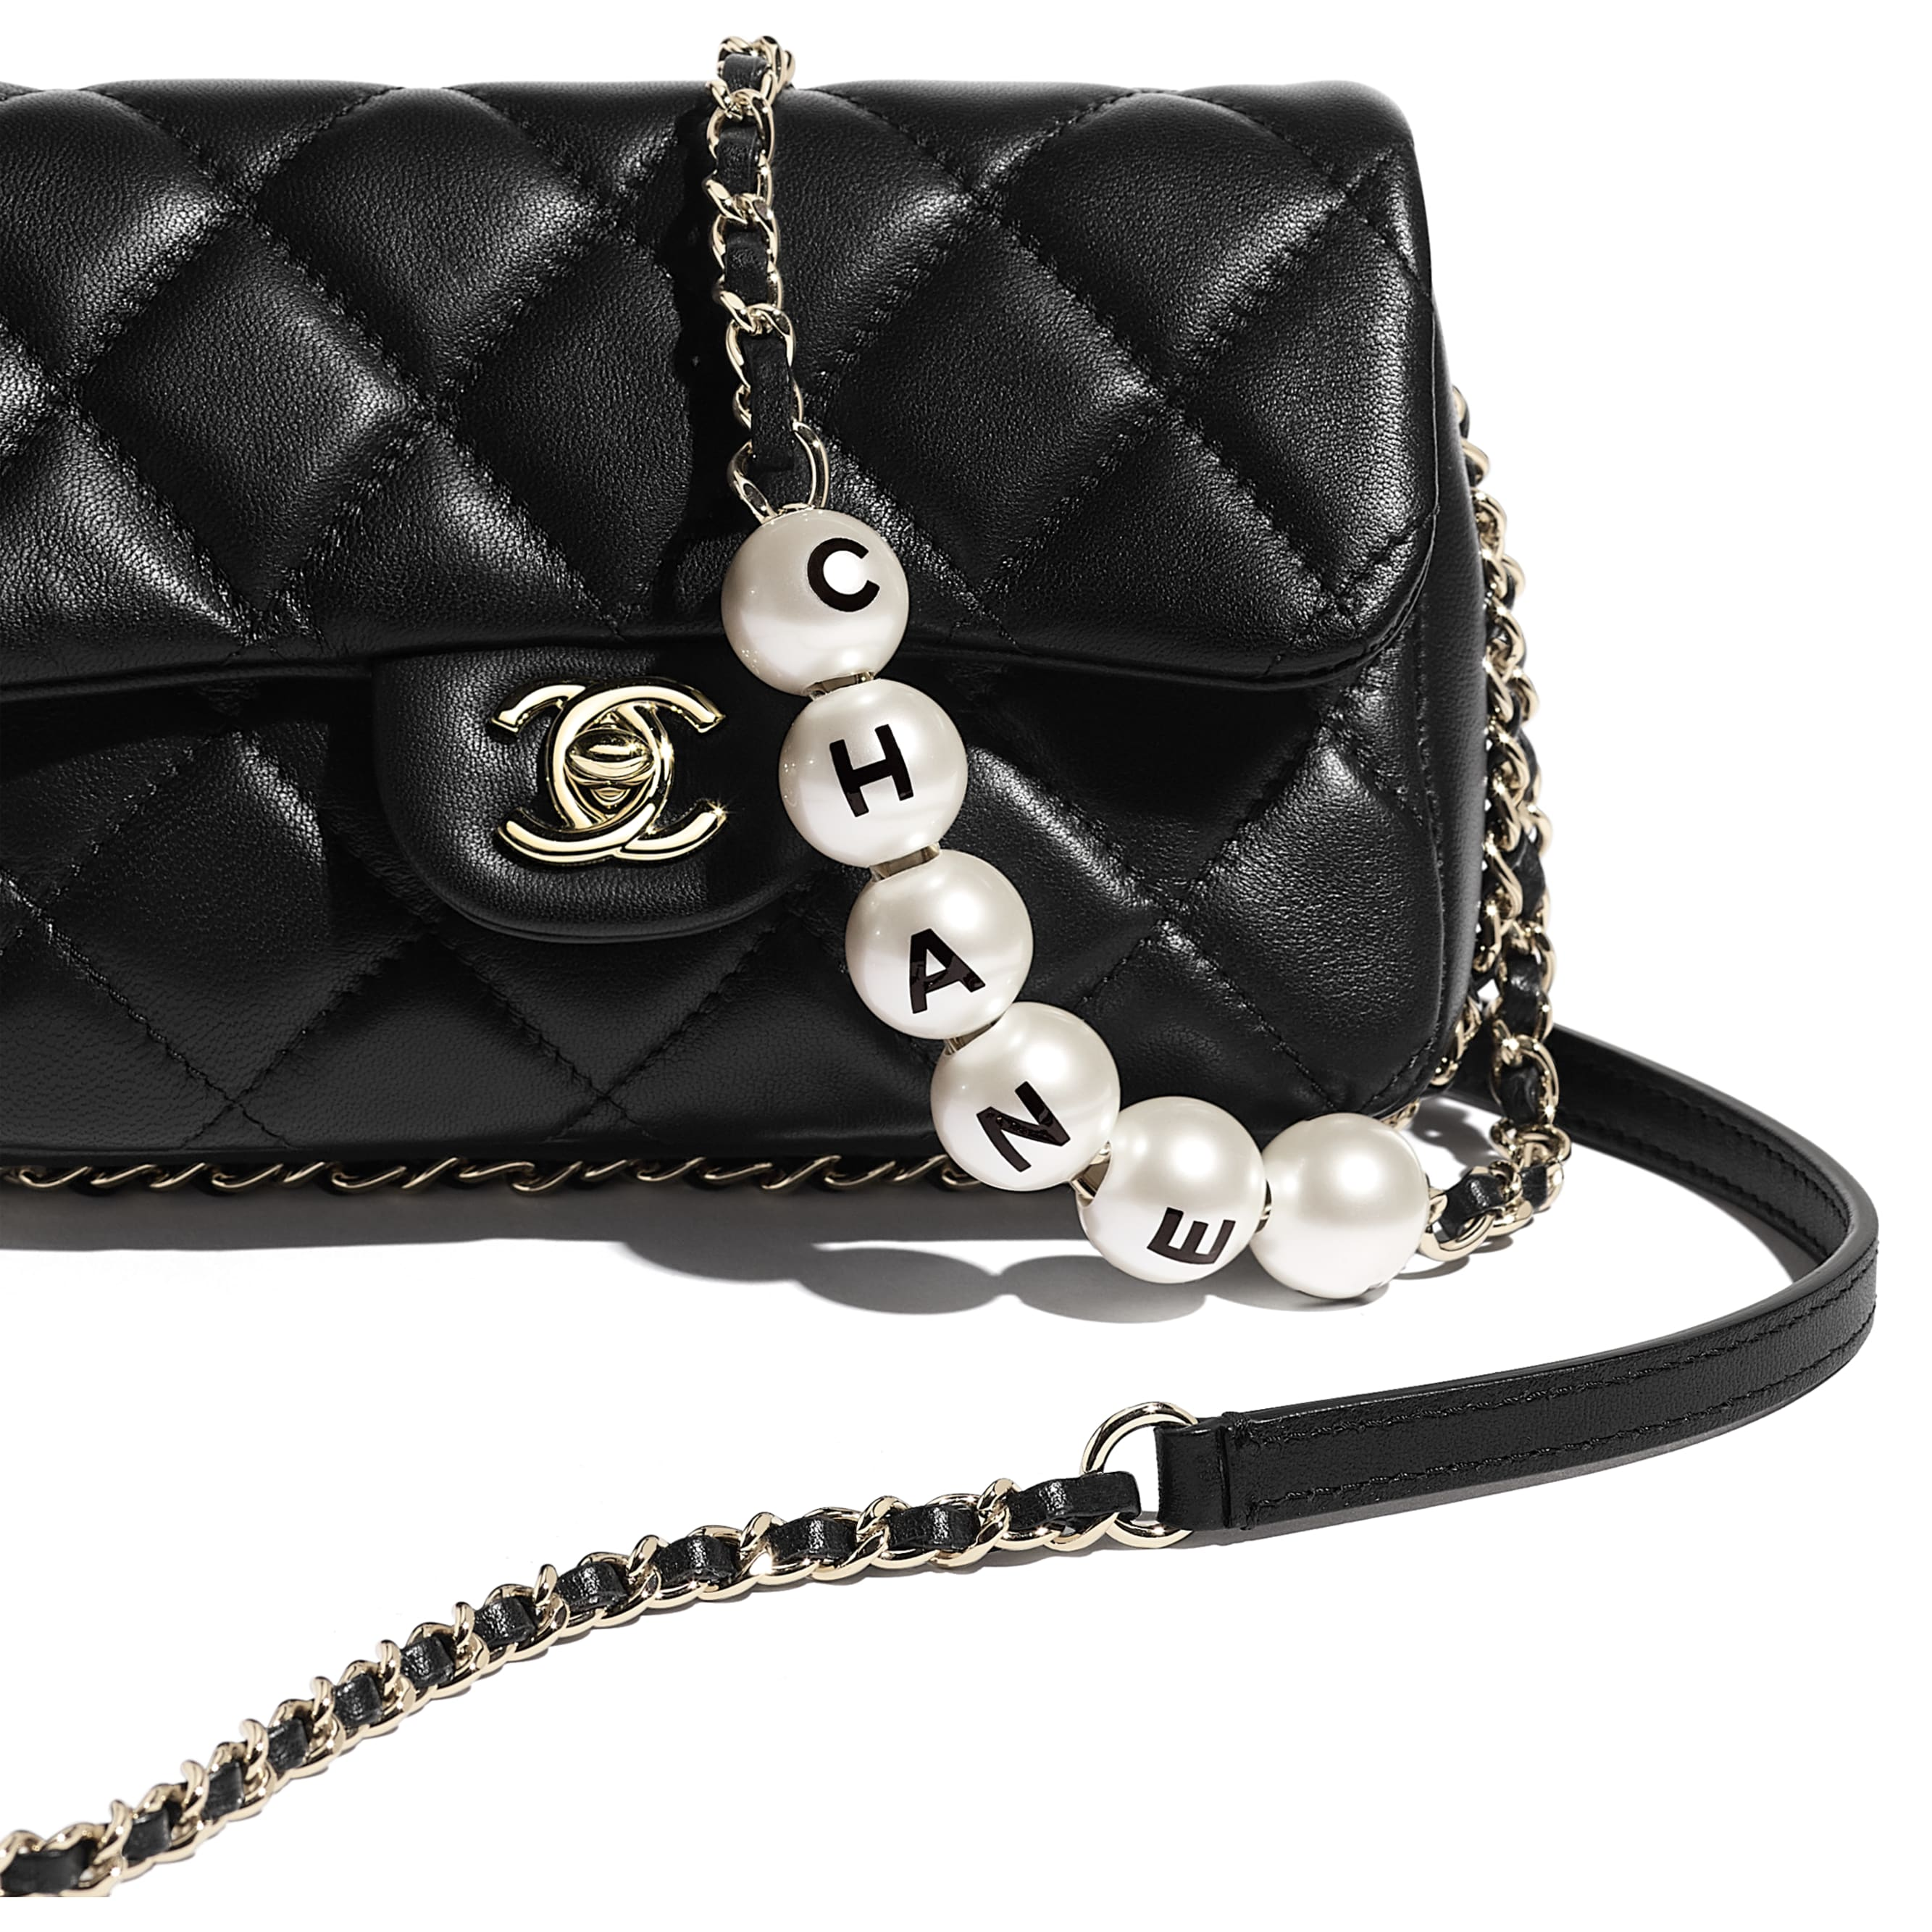 Small Flap Bag - Black - Lambskin, Imitation Pearls & Gold Metal - CHANEL - Extra view - see standard sized version